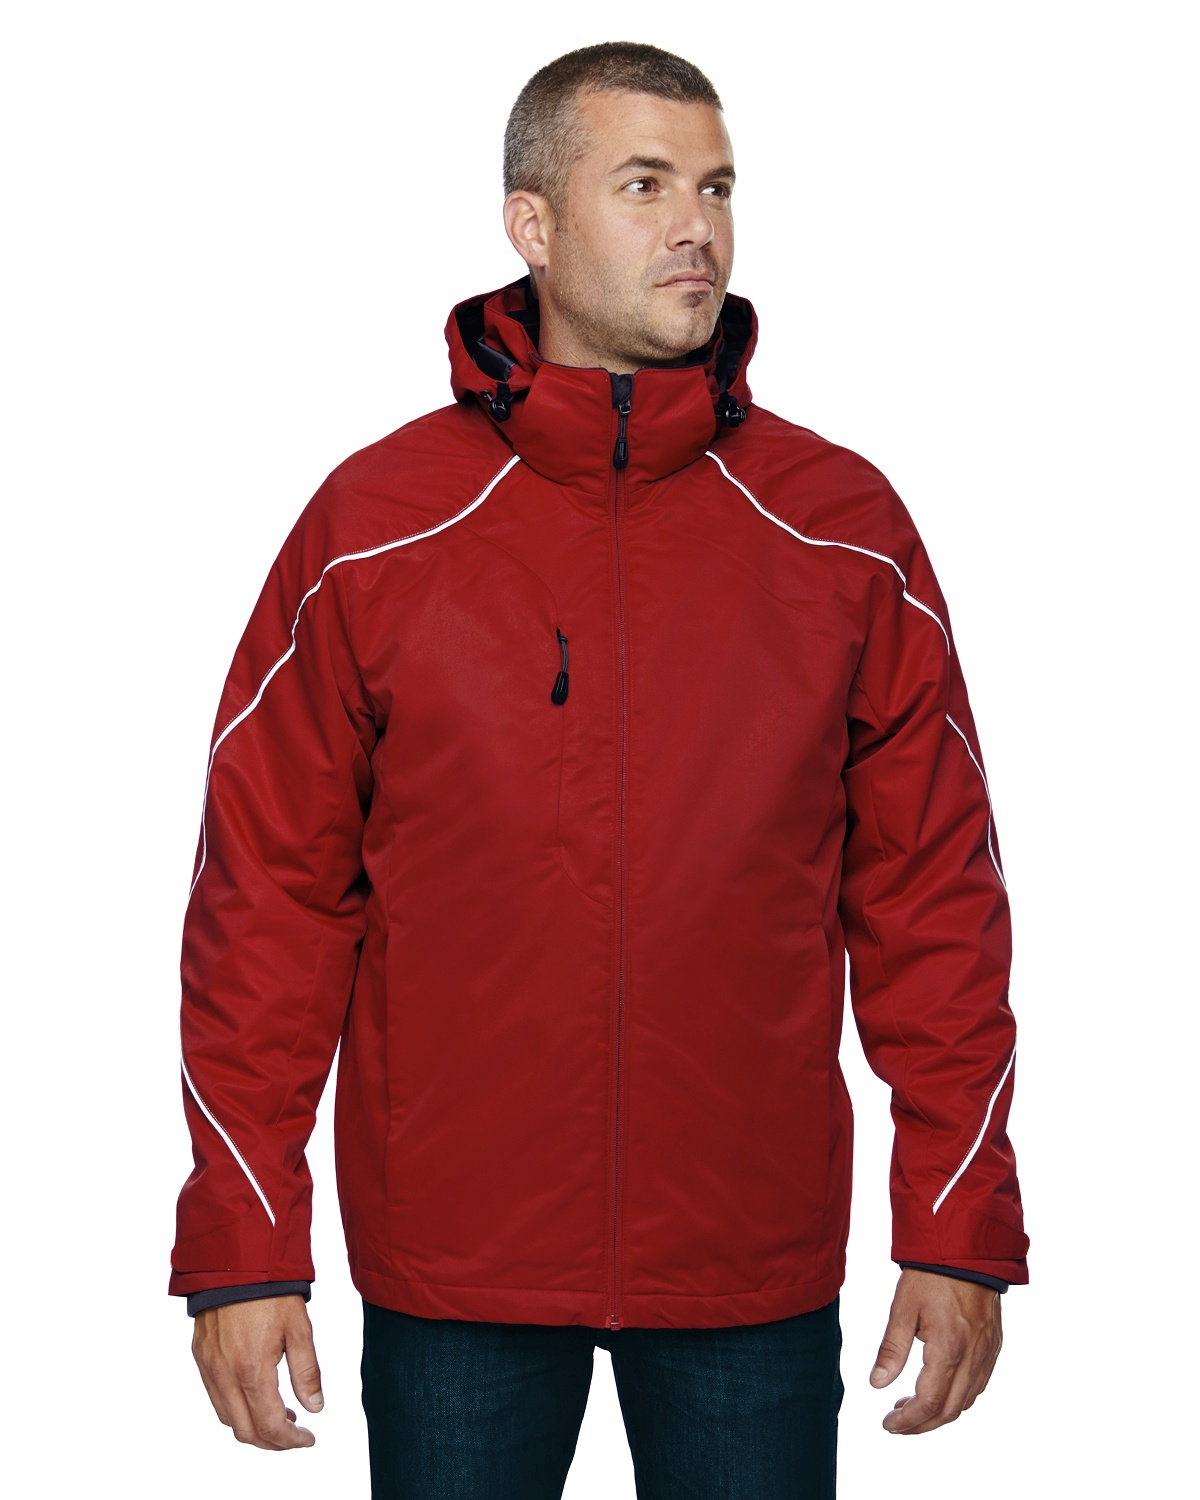 Classic Red North End Angle 3-in-1 Jacket with Bonded Fleece Liner XL 88196